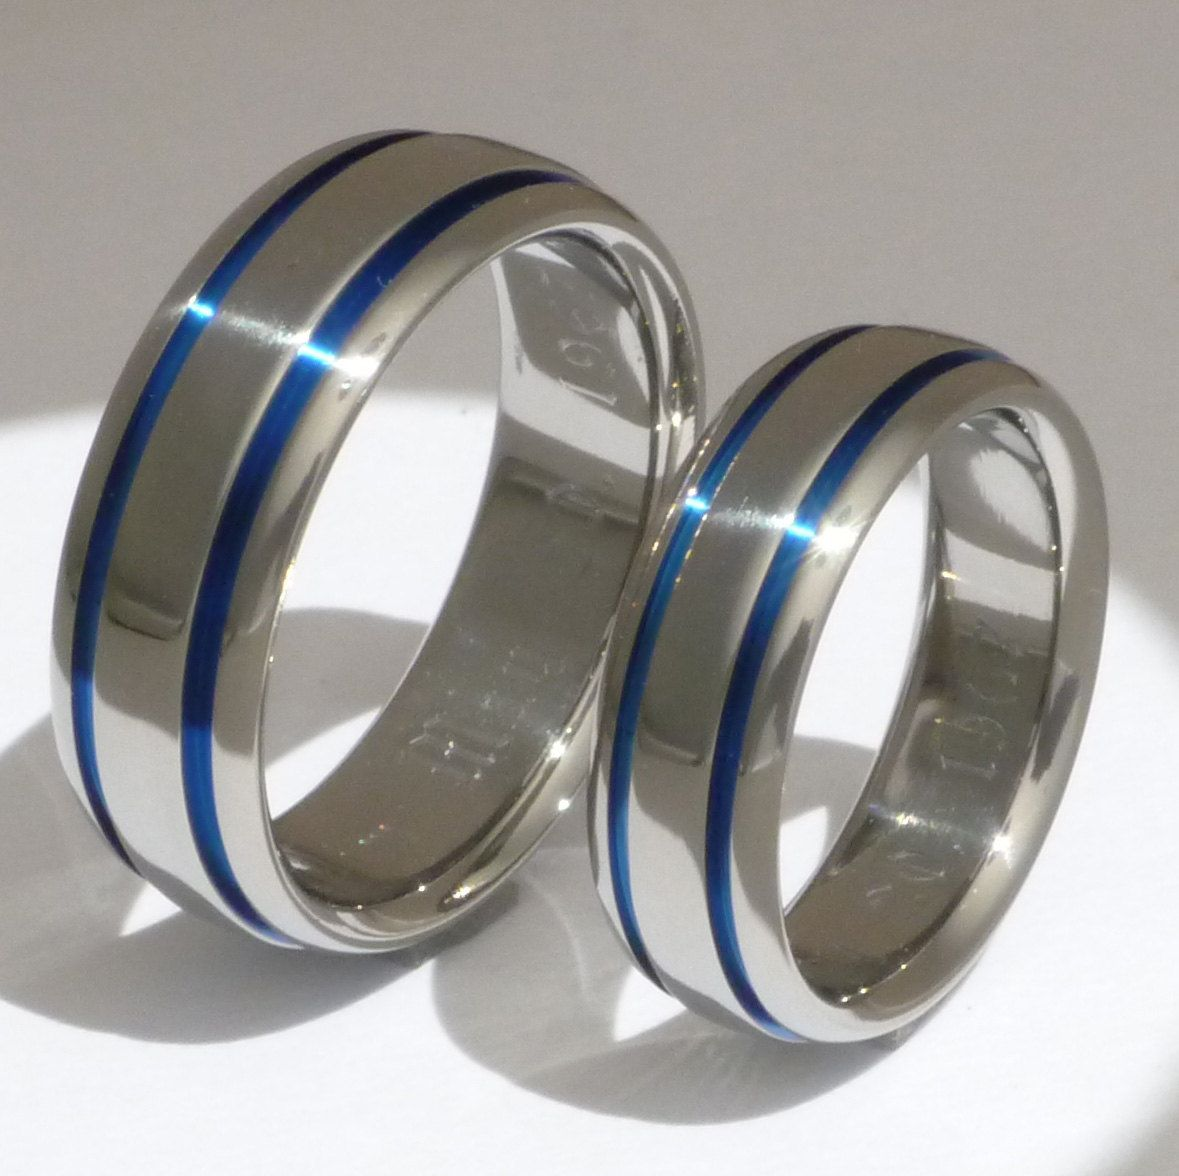 His and Hers Matching Blue Titanium Wedding Bands - stb10- Polished. $449.00, via Etsy.